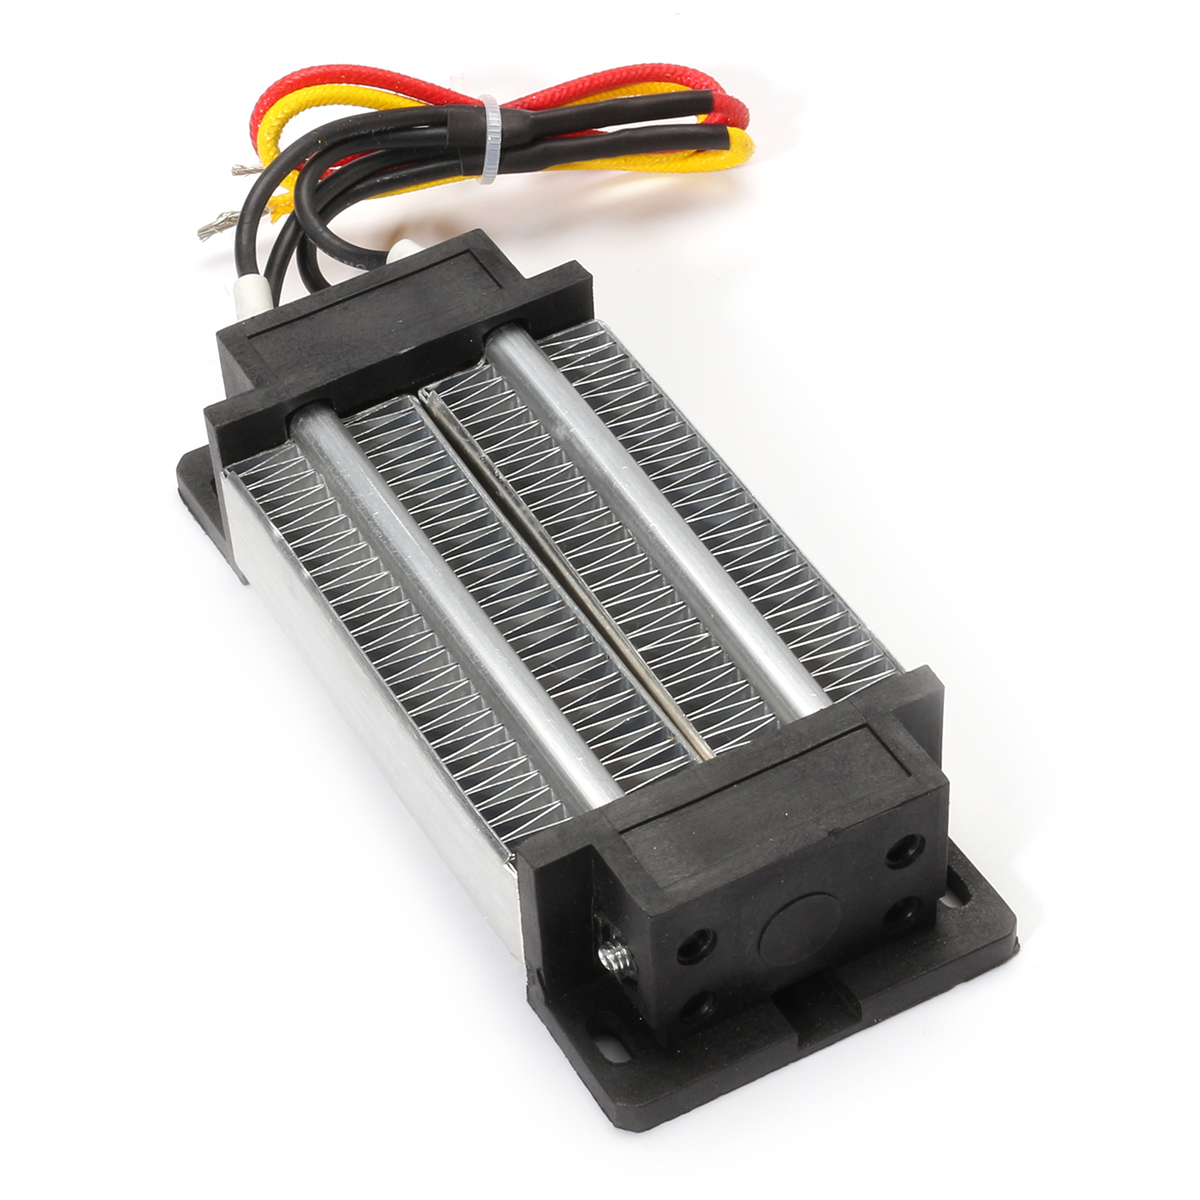 Heater for Incubator 12V 200W Electric Thermostatic PTC